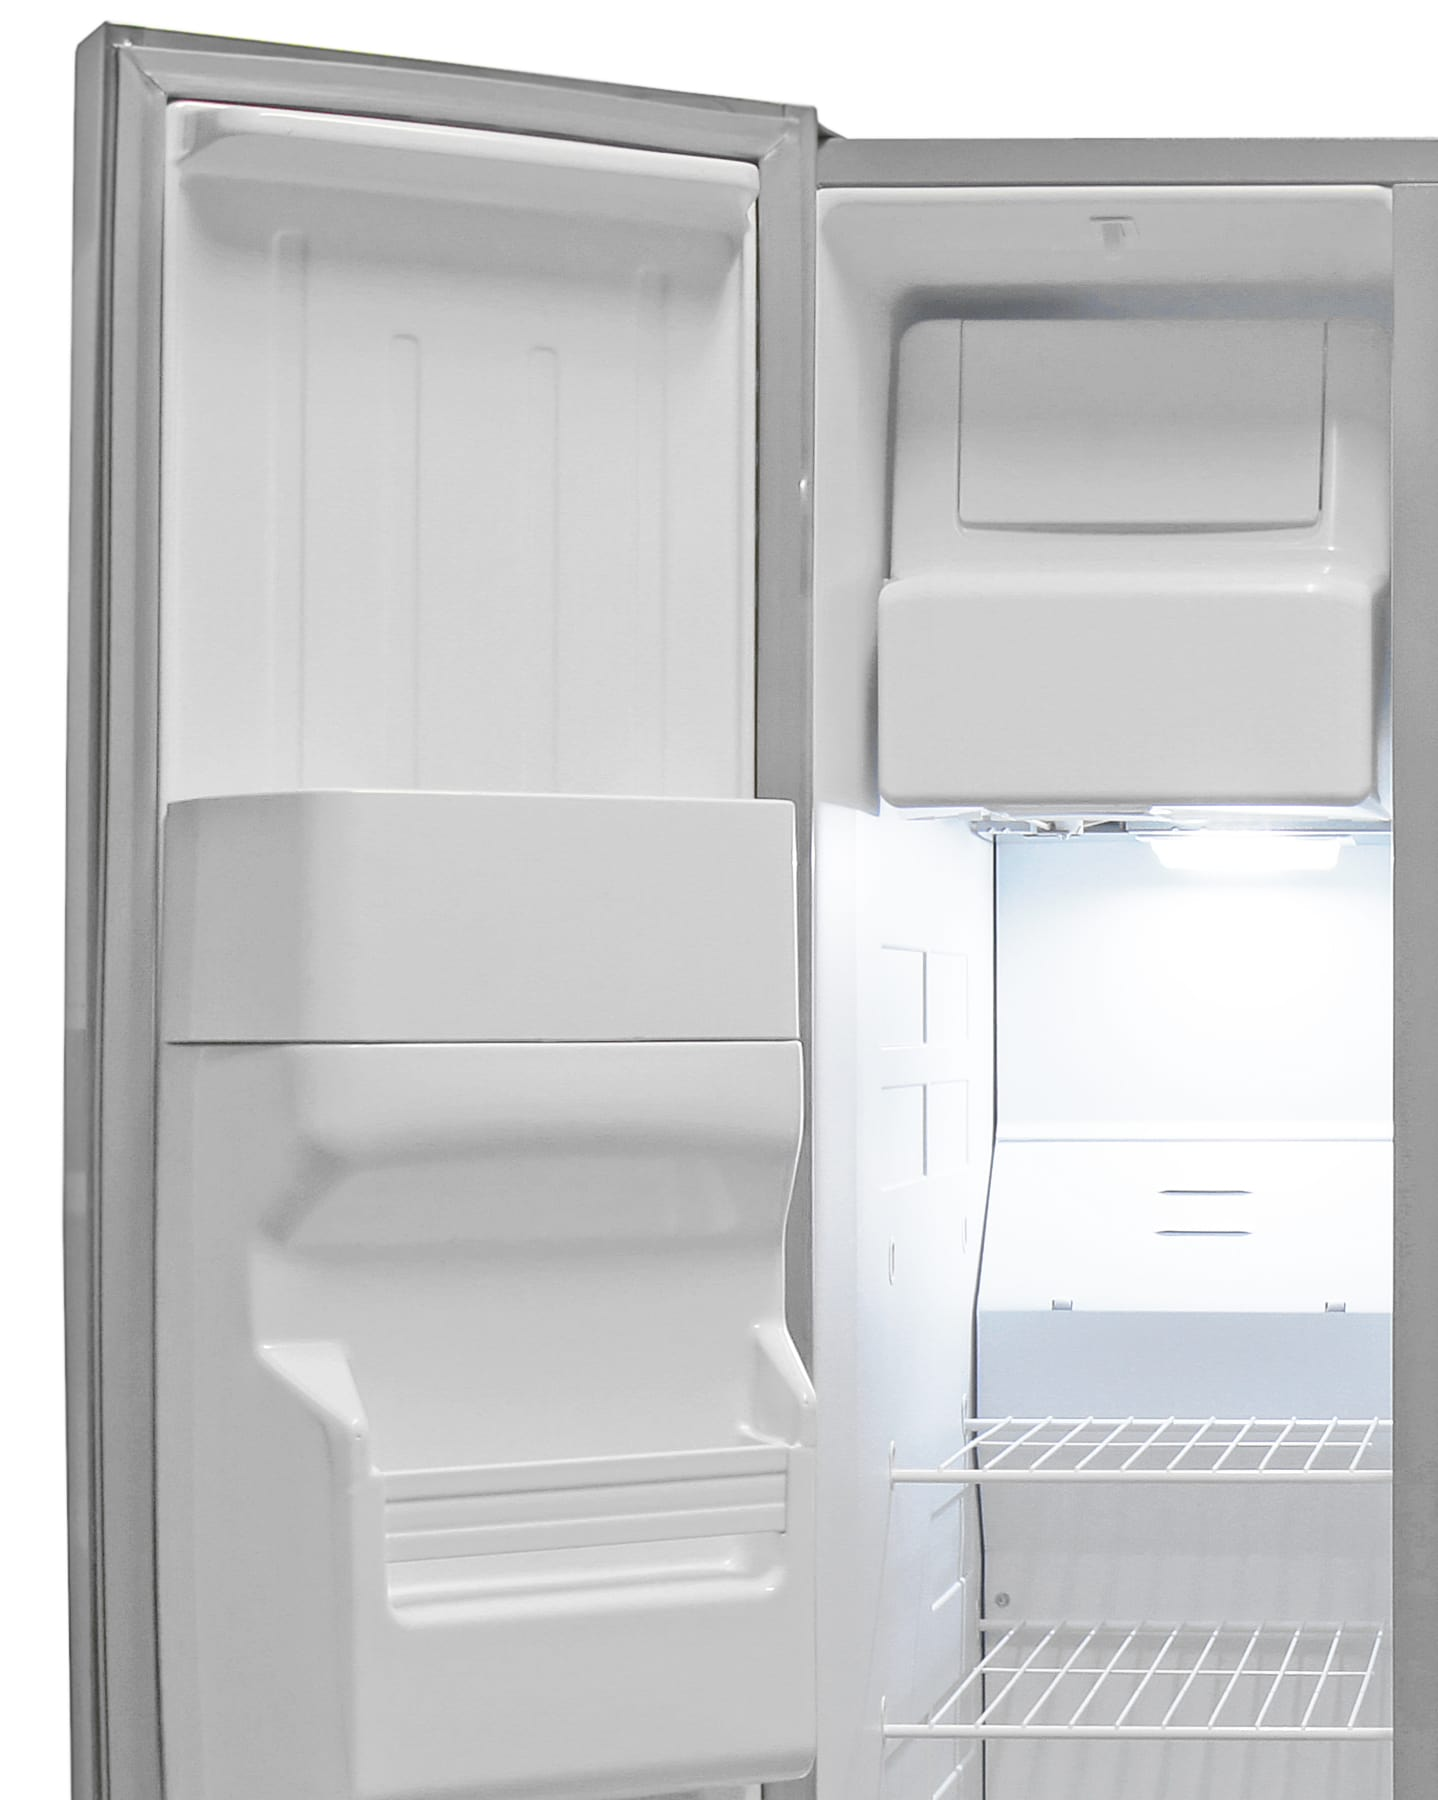 A lot of the Whirlpool WRS325FDAM's freezer space is taken up by the icemaker.